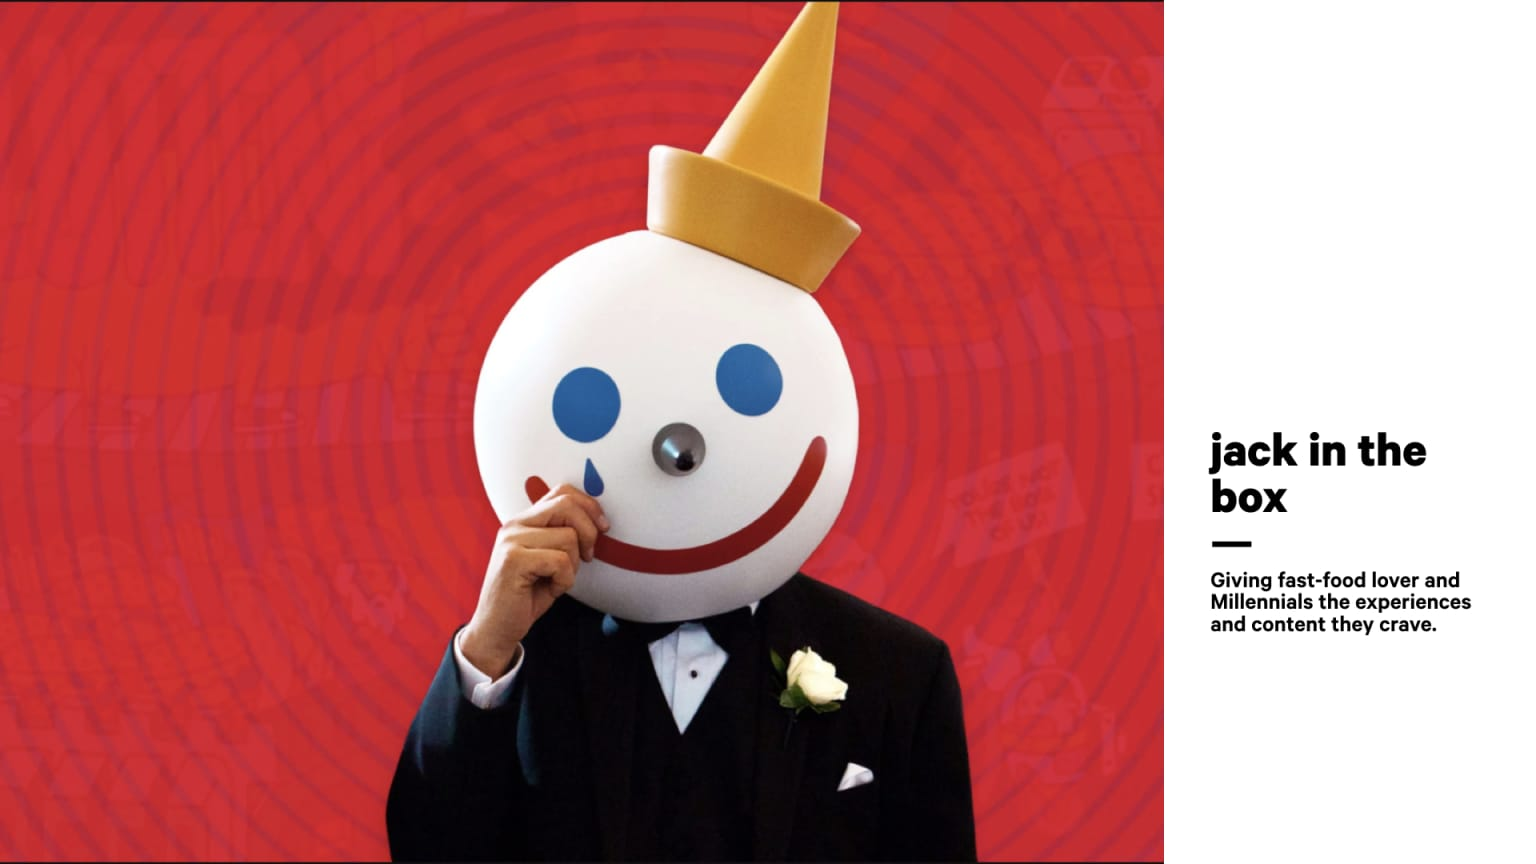 Jack In the Box --Brand Digitized